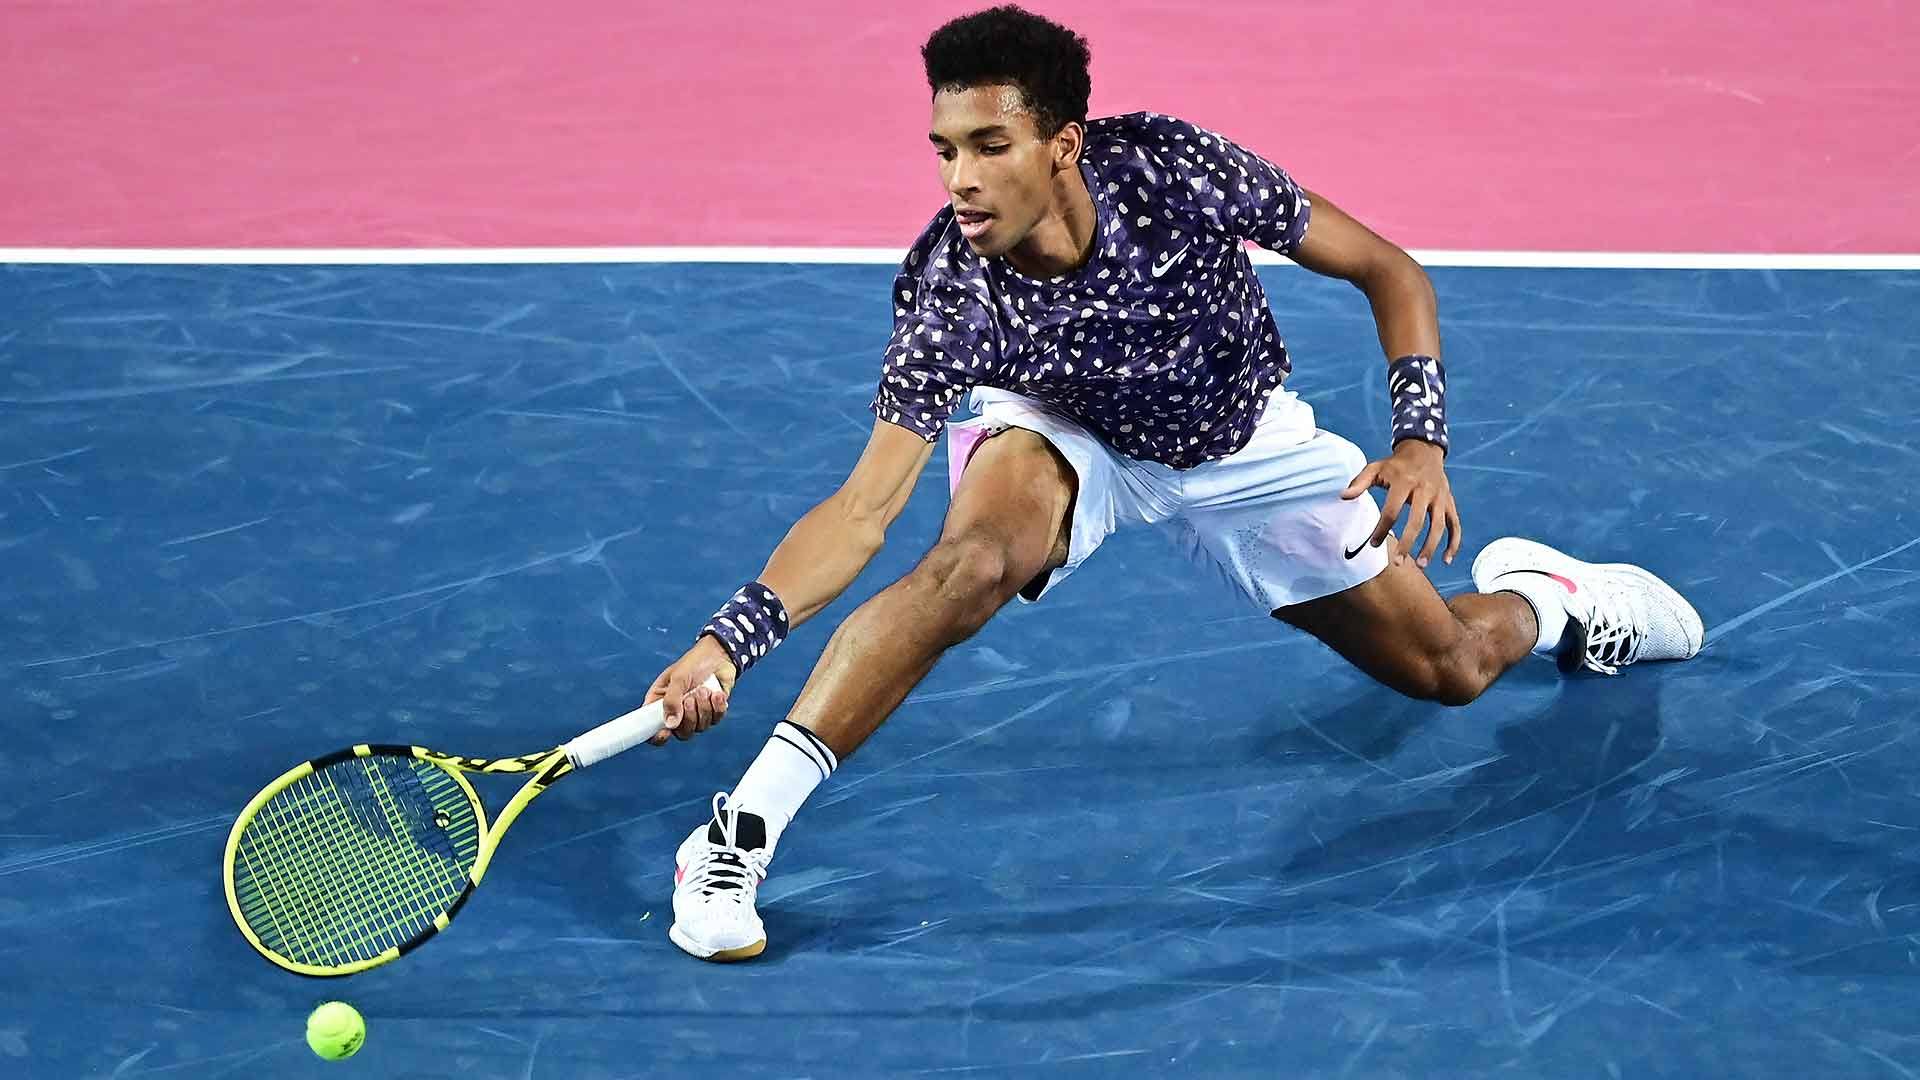 Auger-Aliassime vs Struff Betting Predictions and Odds